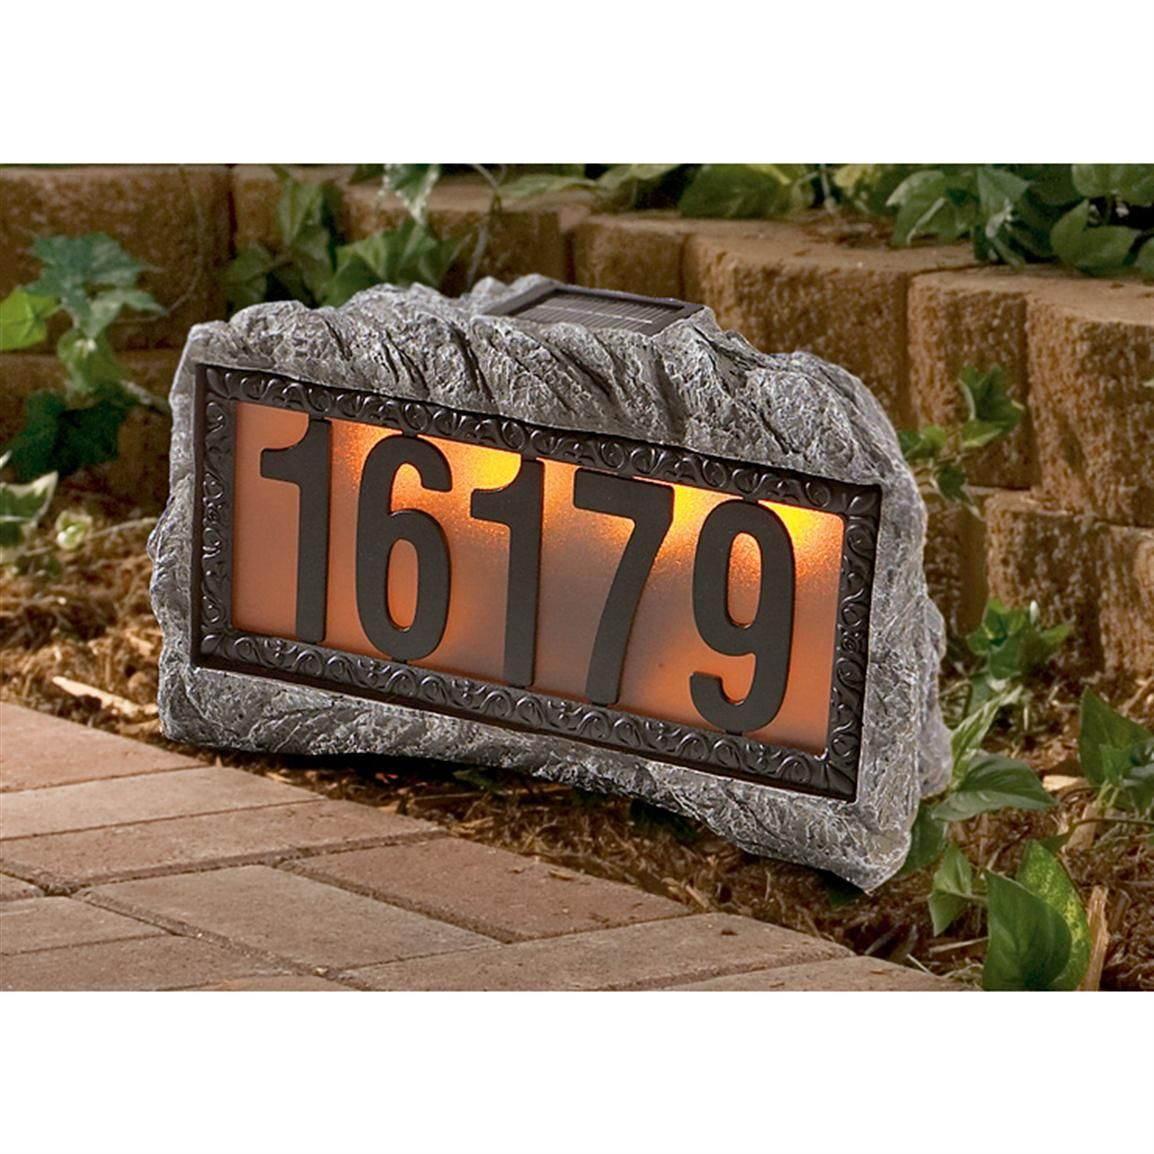 Westinghouse Solar Powered House Number Rock 93784 Solar